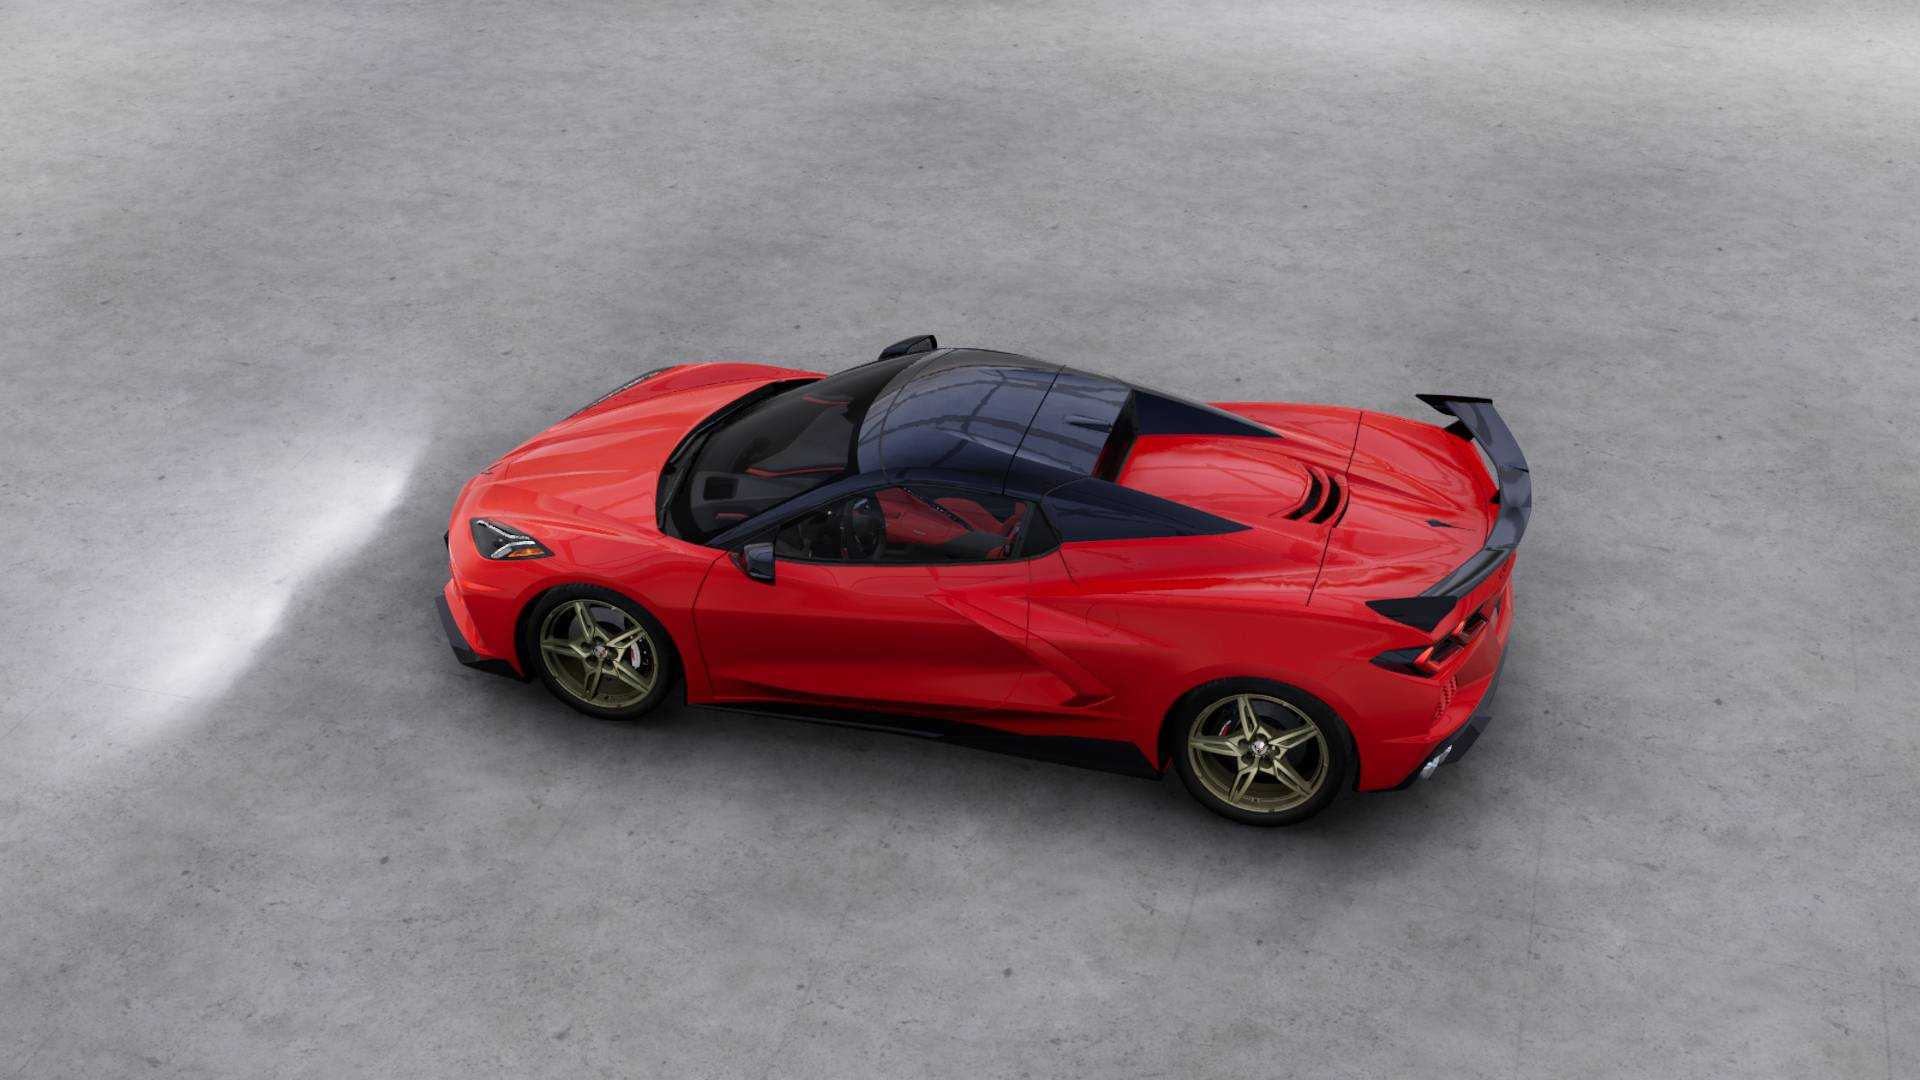 2020 Chevy Corvette Convertible Configurator Is Up, Go Be ...